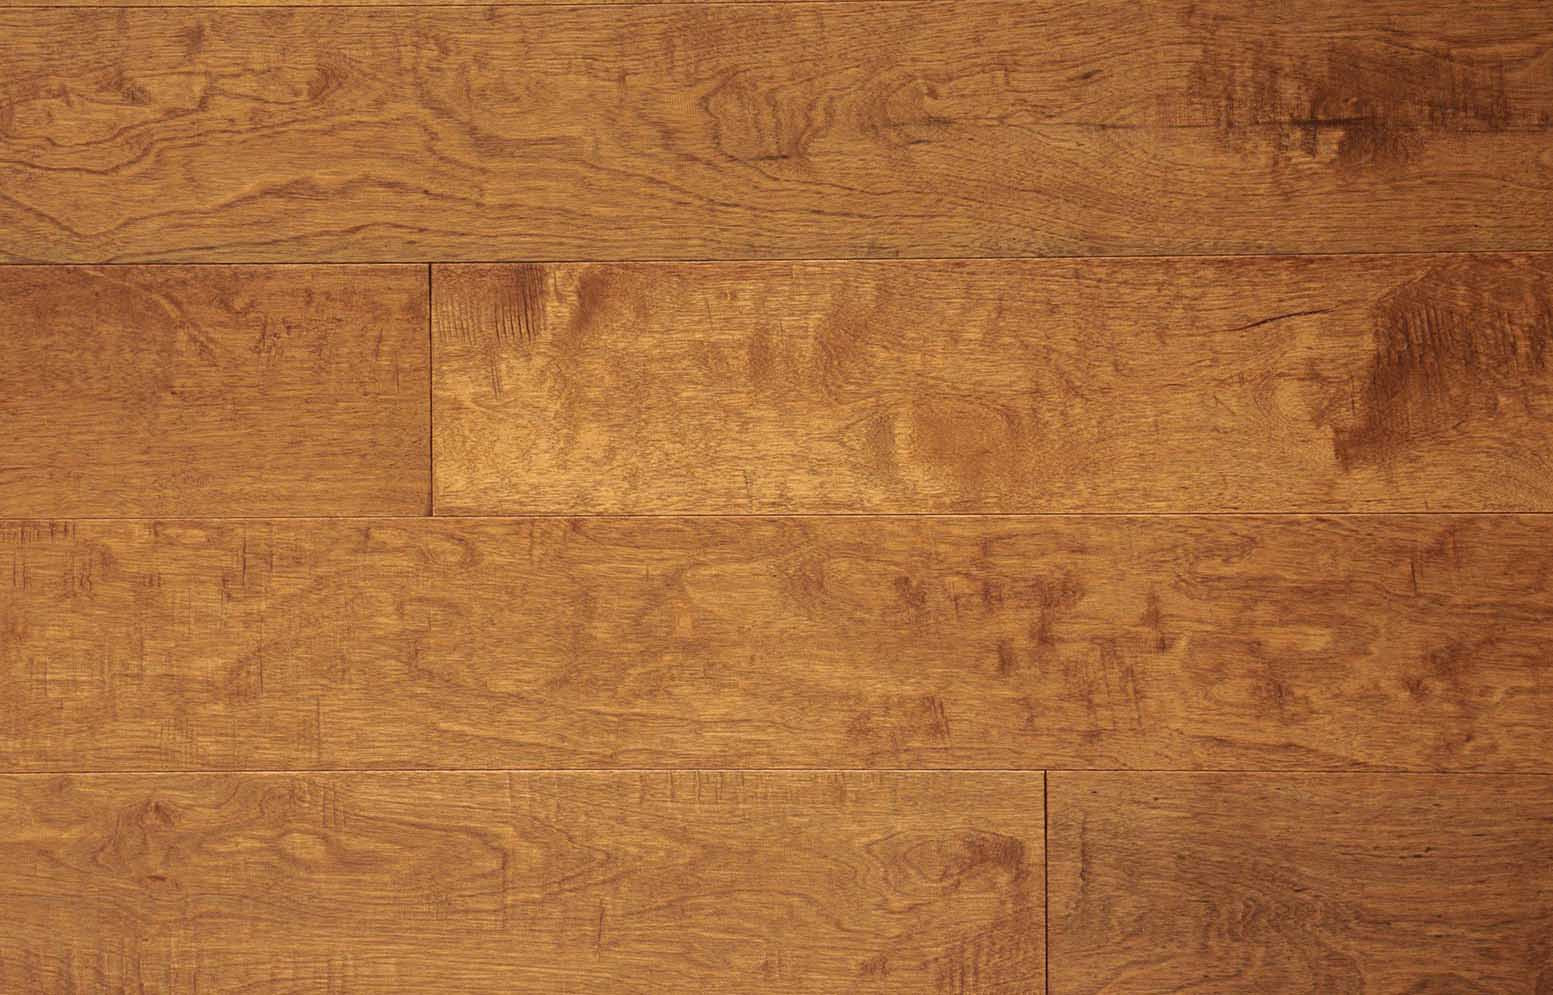 5 inch solid hardwood flooring of hardwood flooring intended for copper hickory